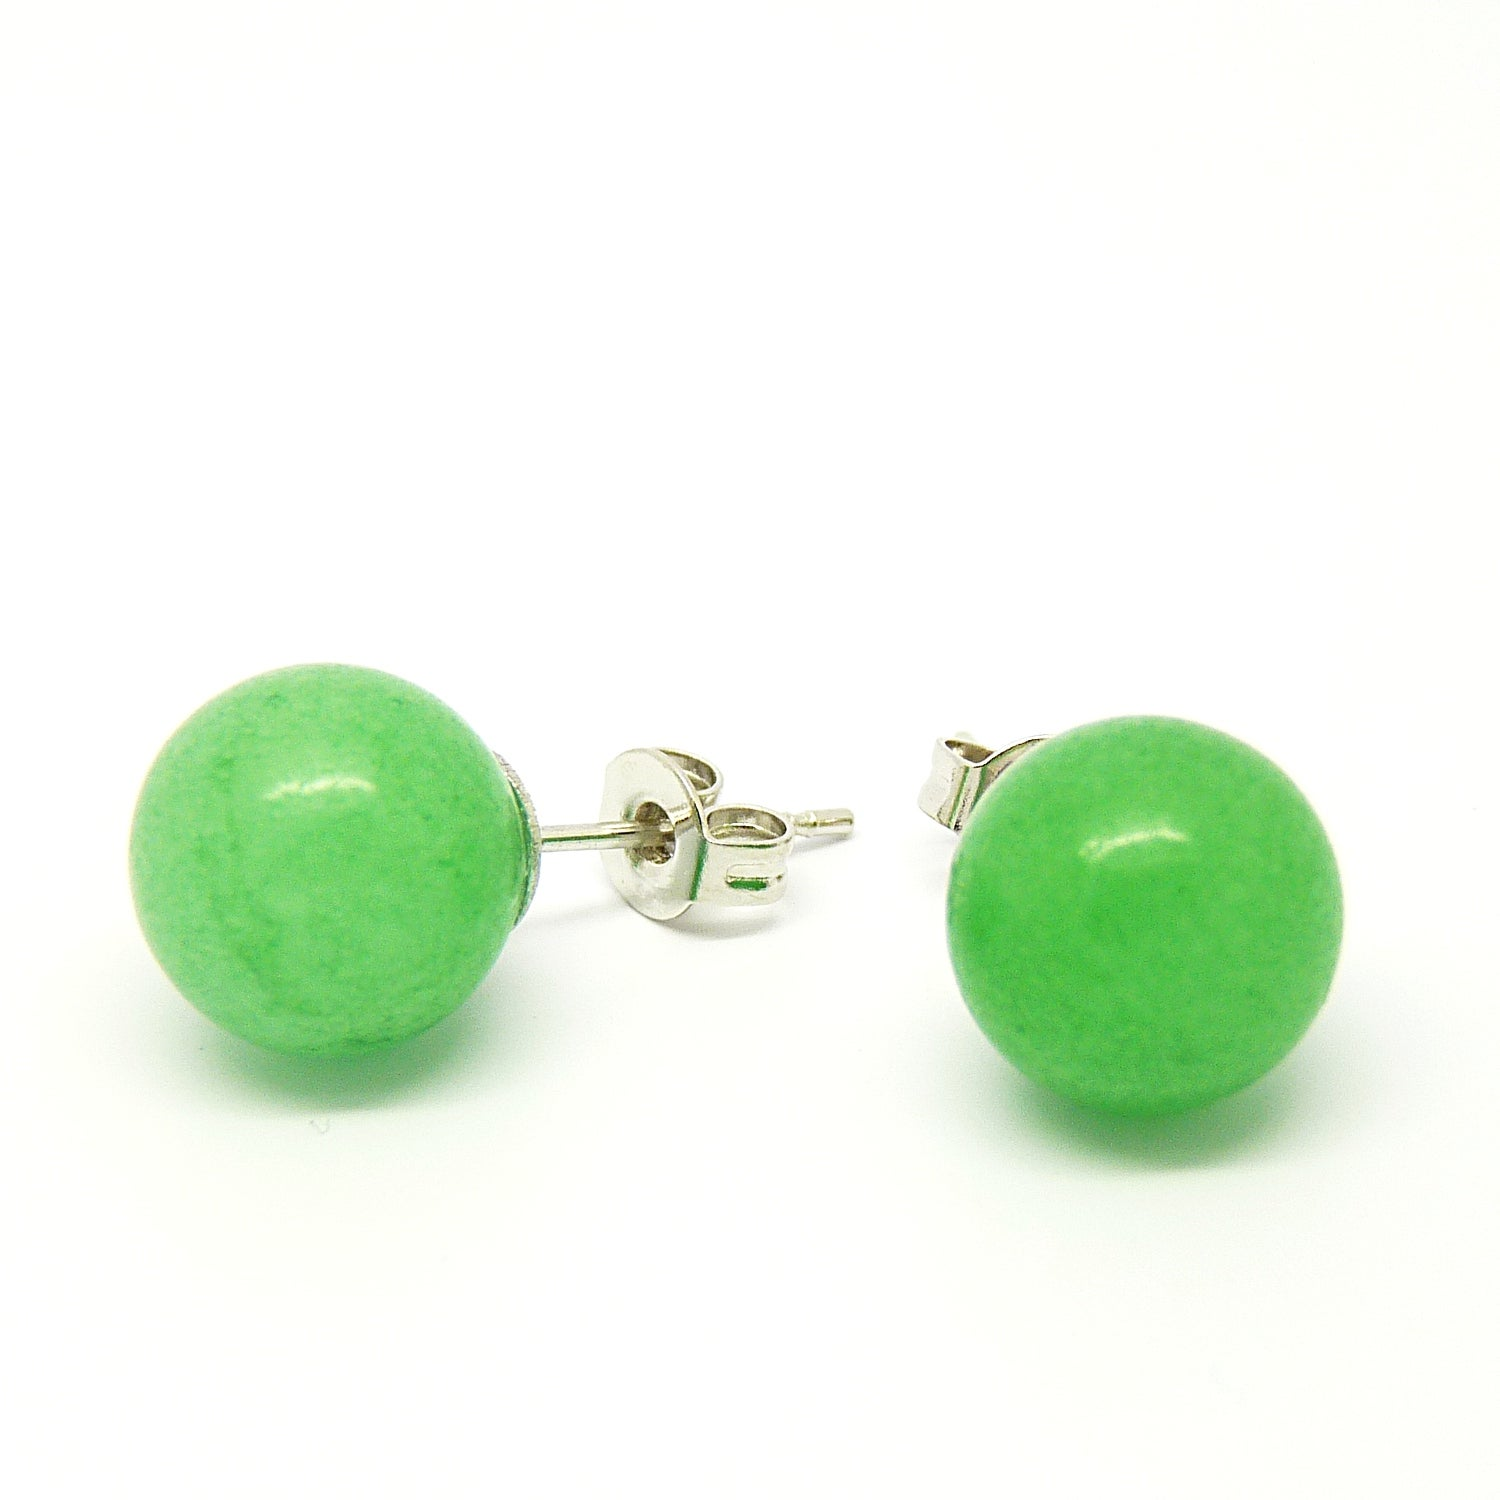 Pretty Little Style Silvertone Green Apple Agate Earrings